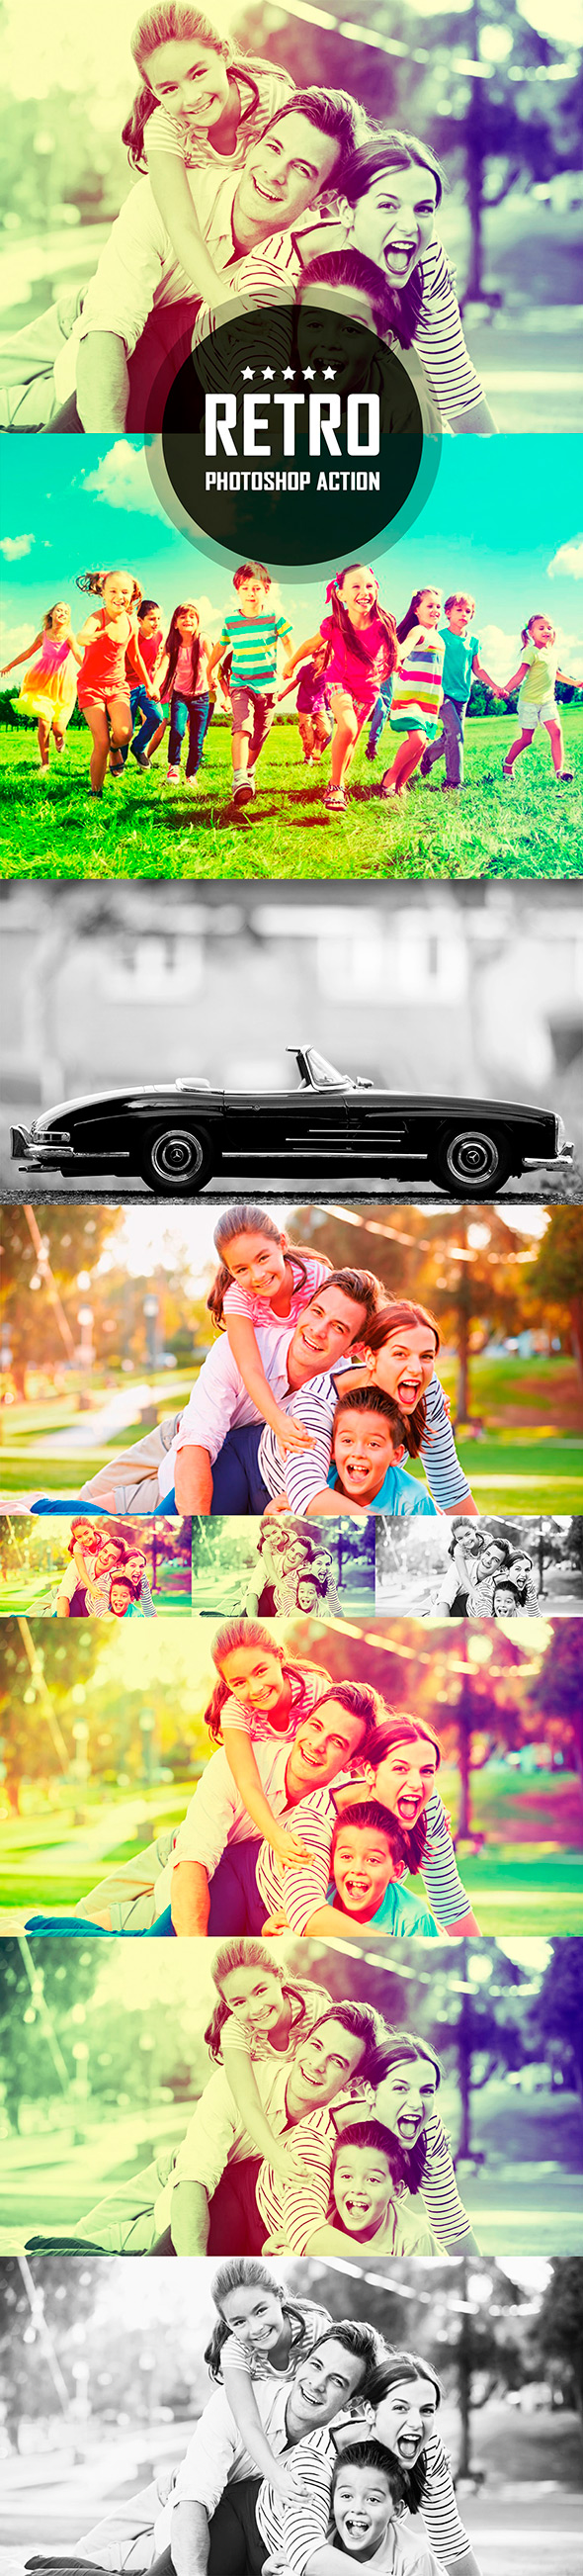 GraphicRiver Retro Photo Style Photoshop Action 20987008